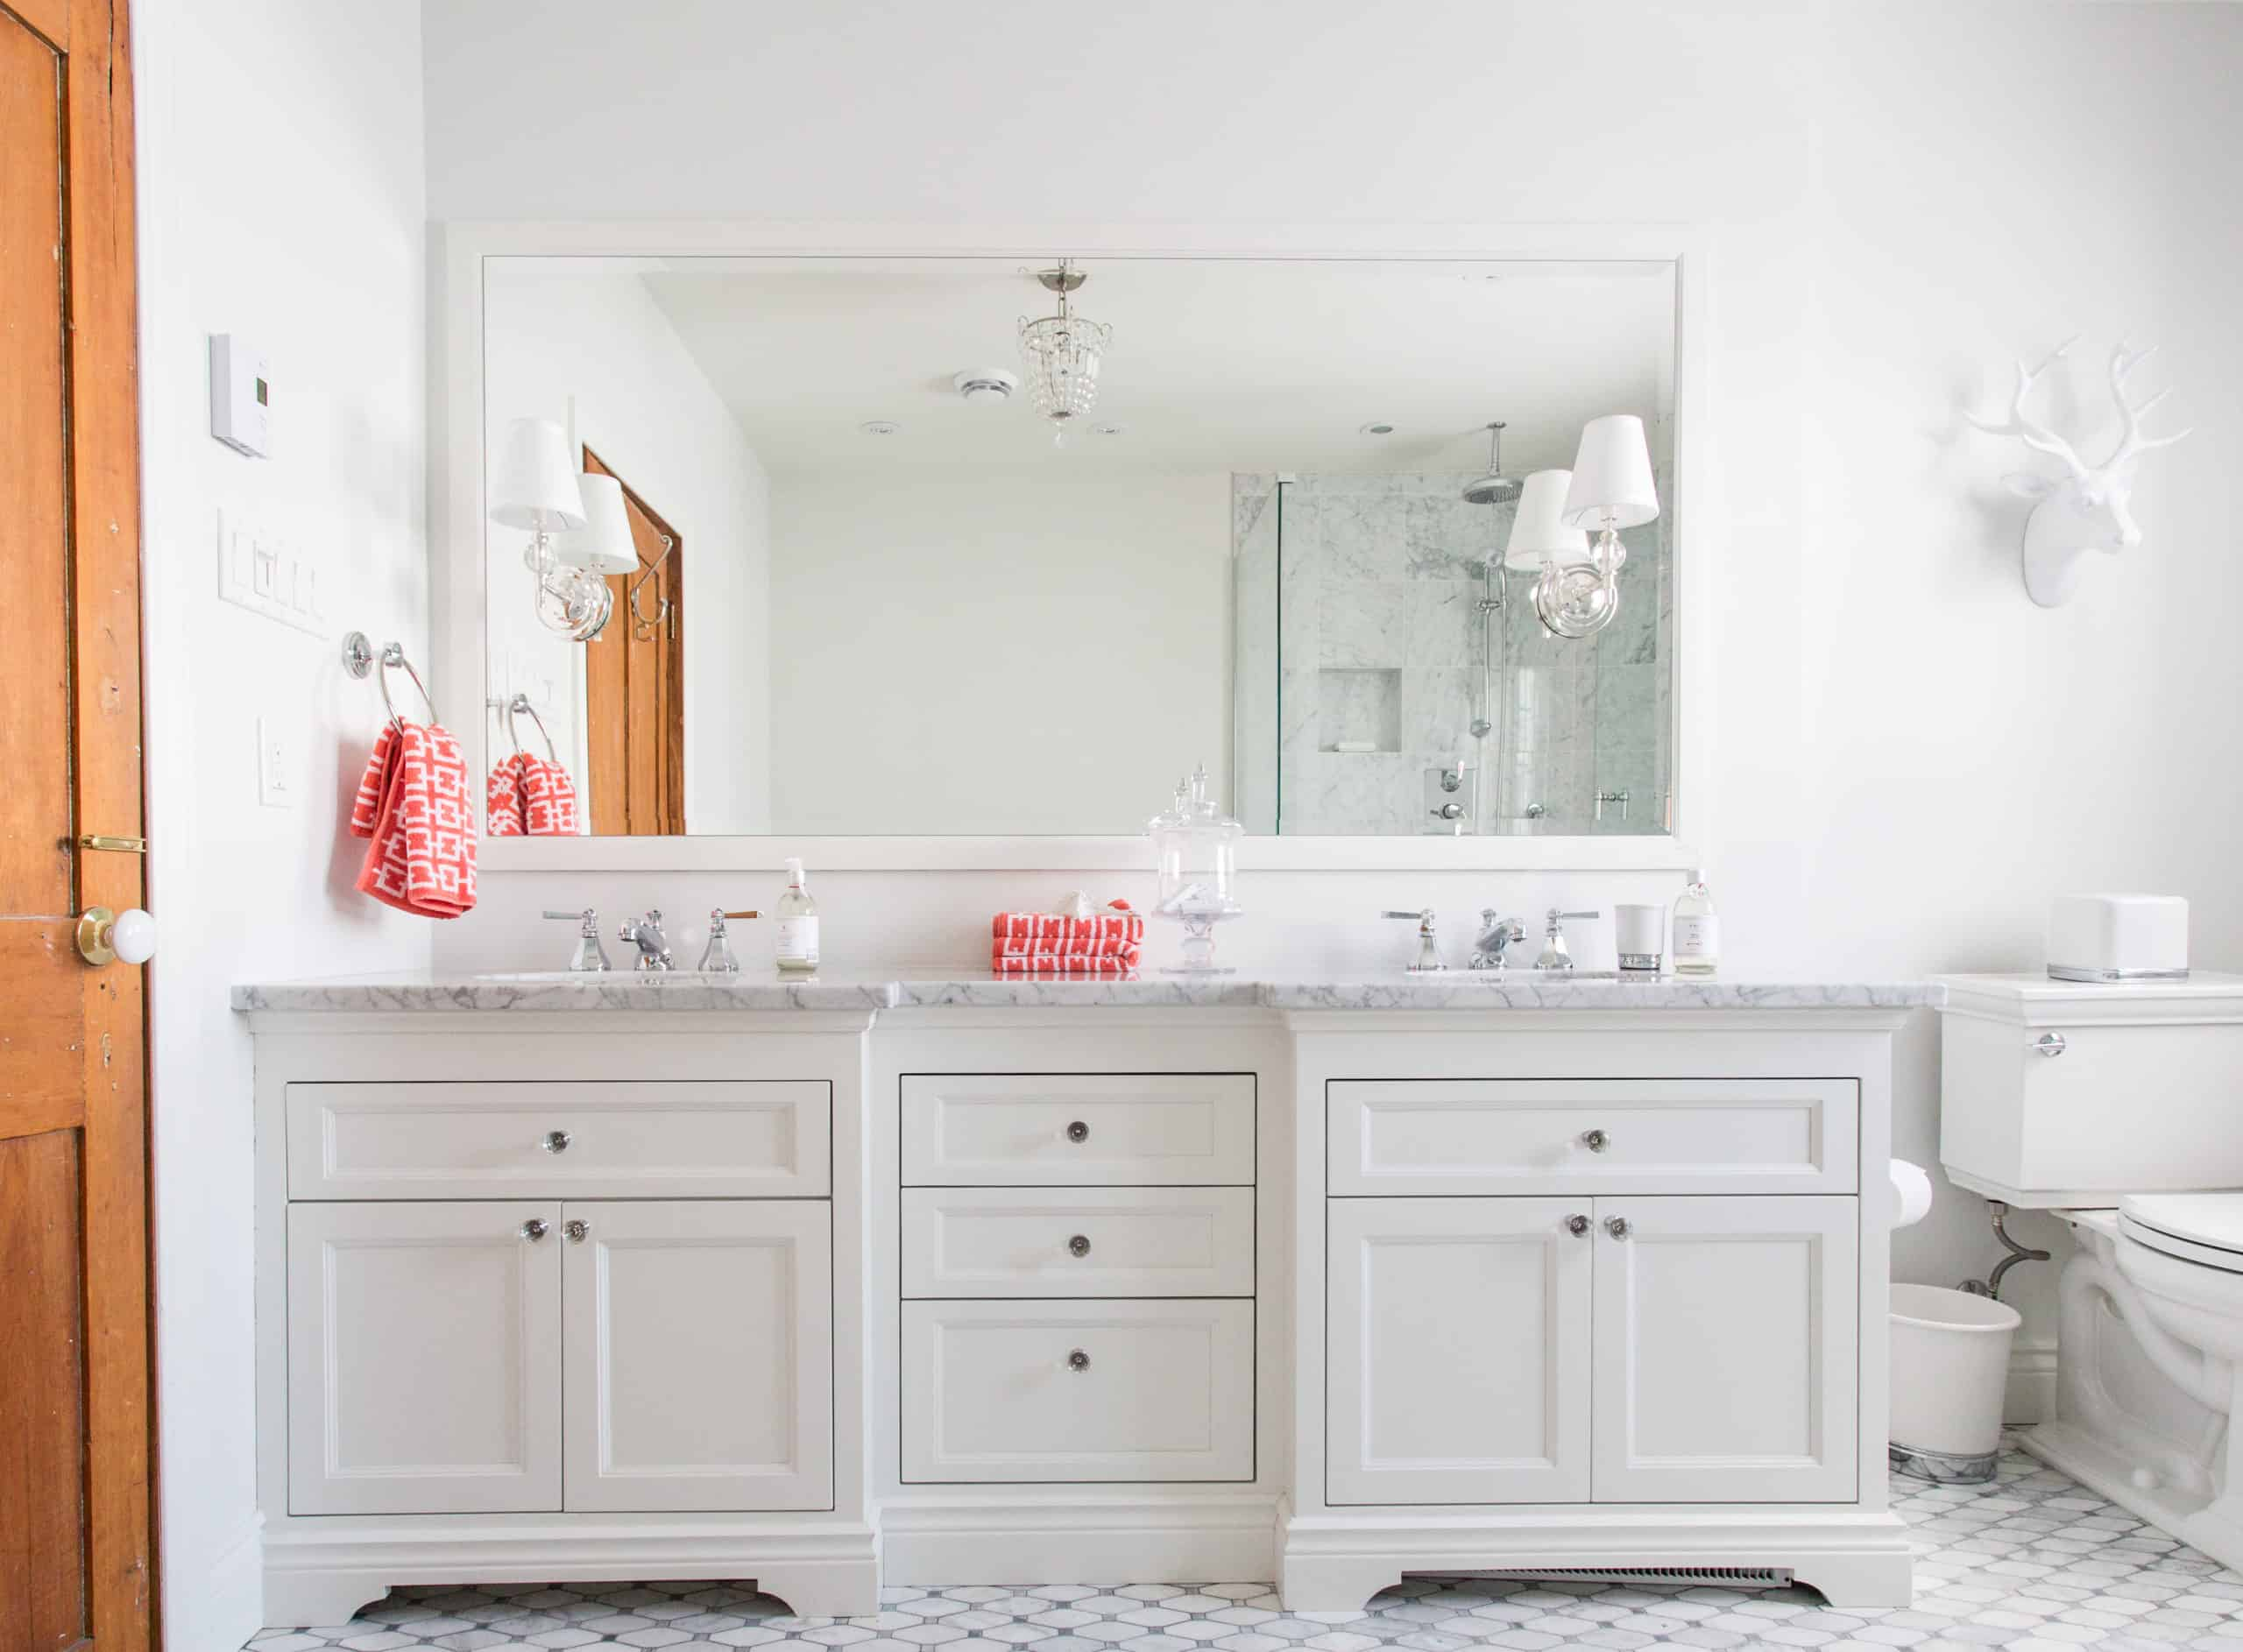 White double vanity with a marble countertop